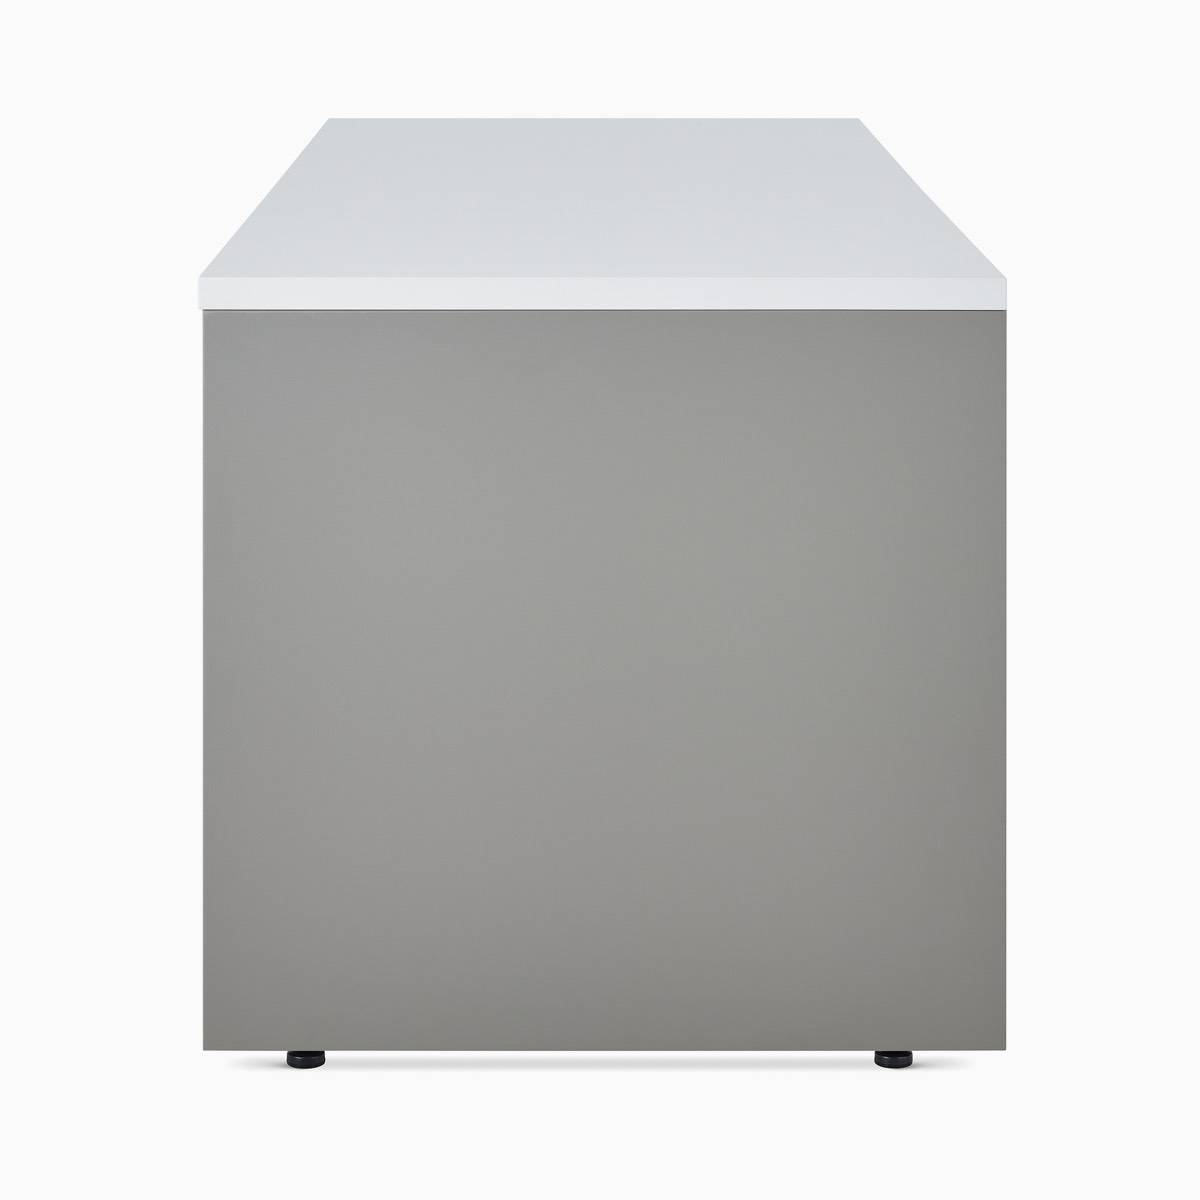 A Canvas Metal Desk rectangular surface.